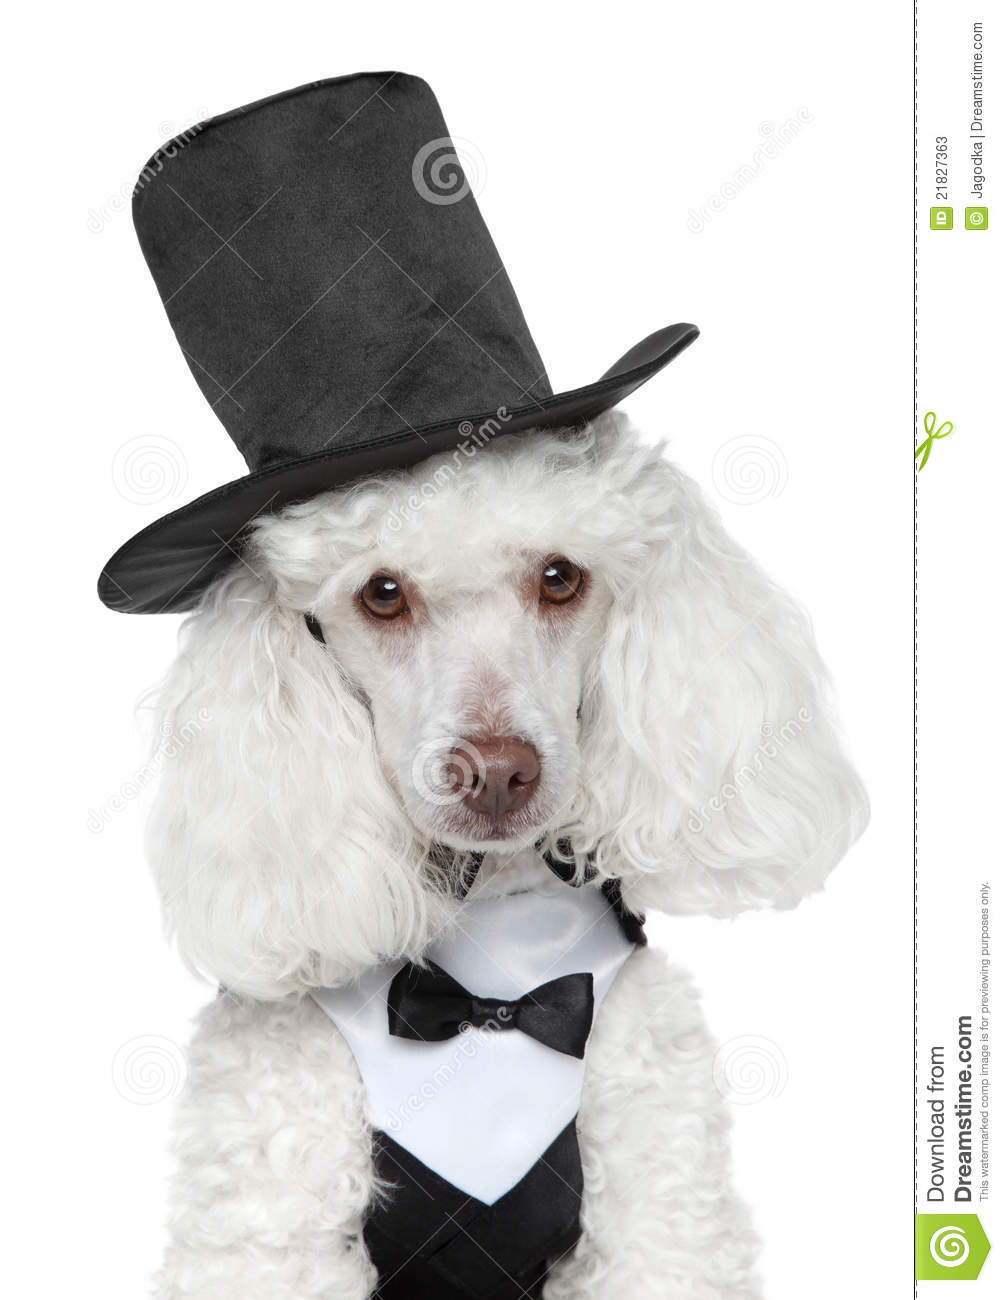 Toy Poodle In Black Waistcoat And Hat Stock Image - Image of